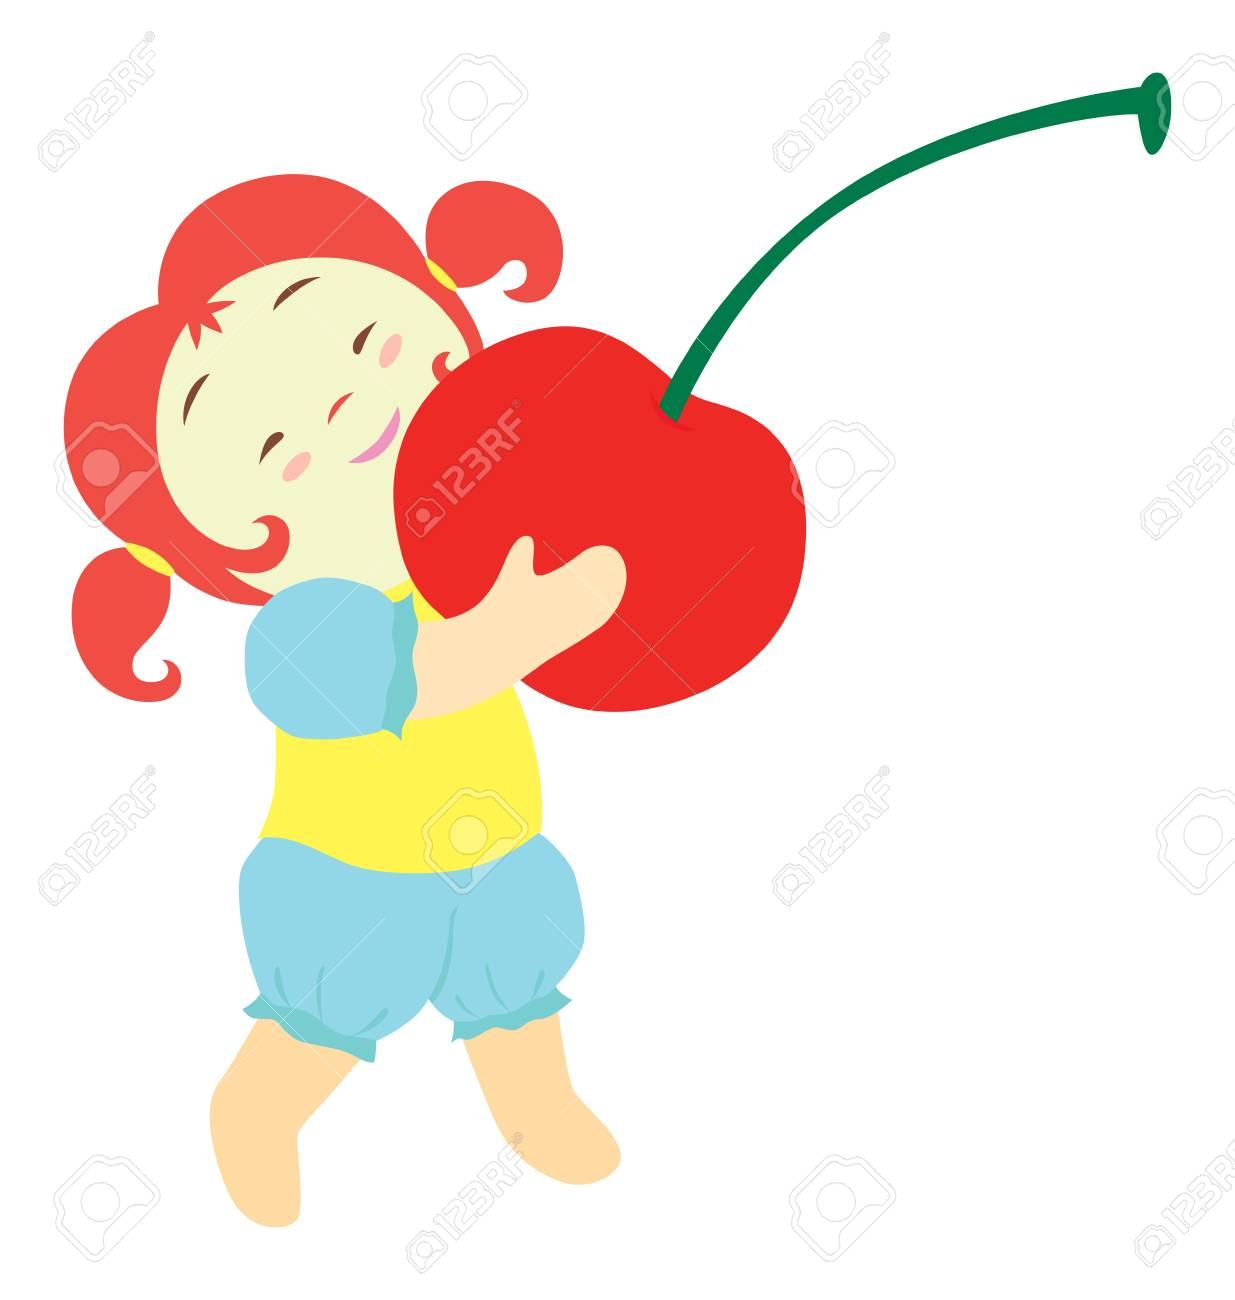 A little girl character carrying a big red cherry. Stock Vector - 9828995